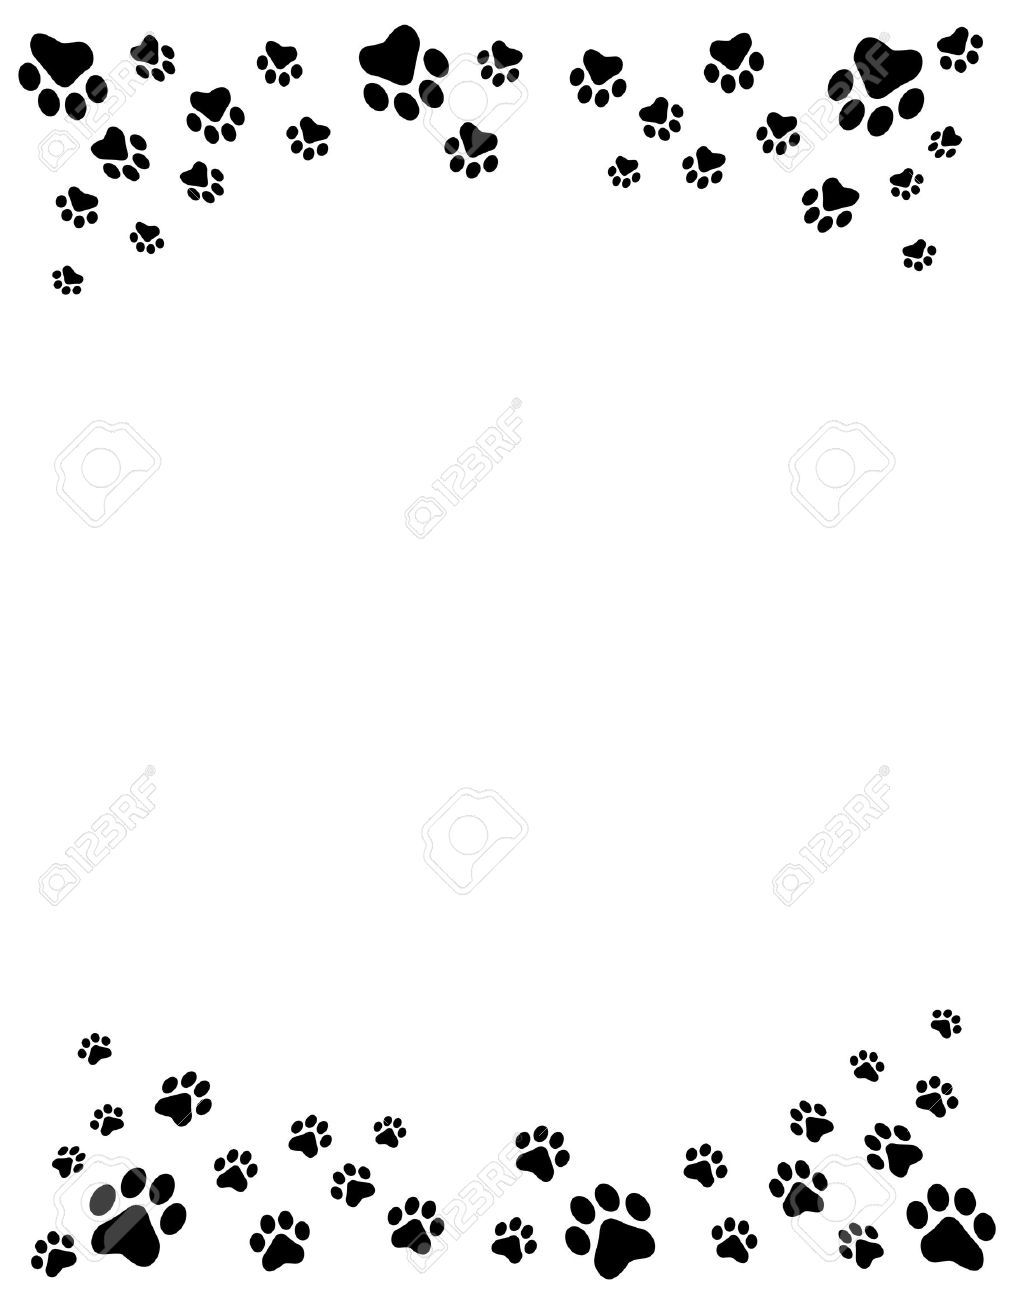 Black And White Pictures Of Dog Paws Blog Lif Co Id